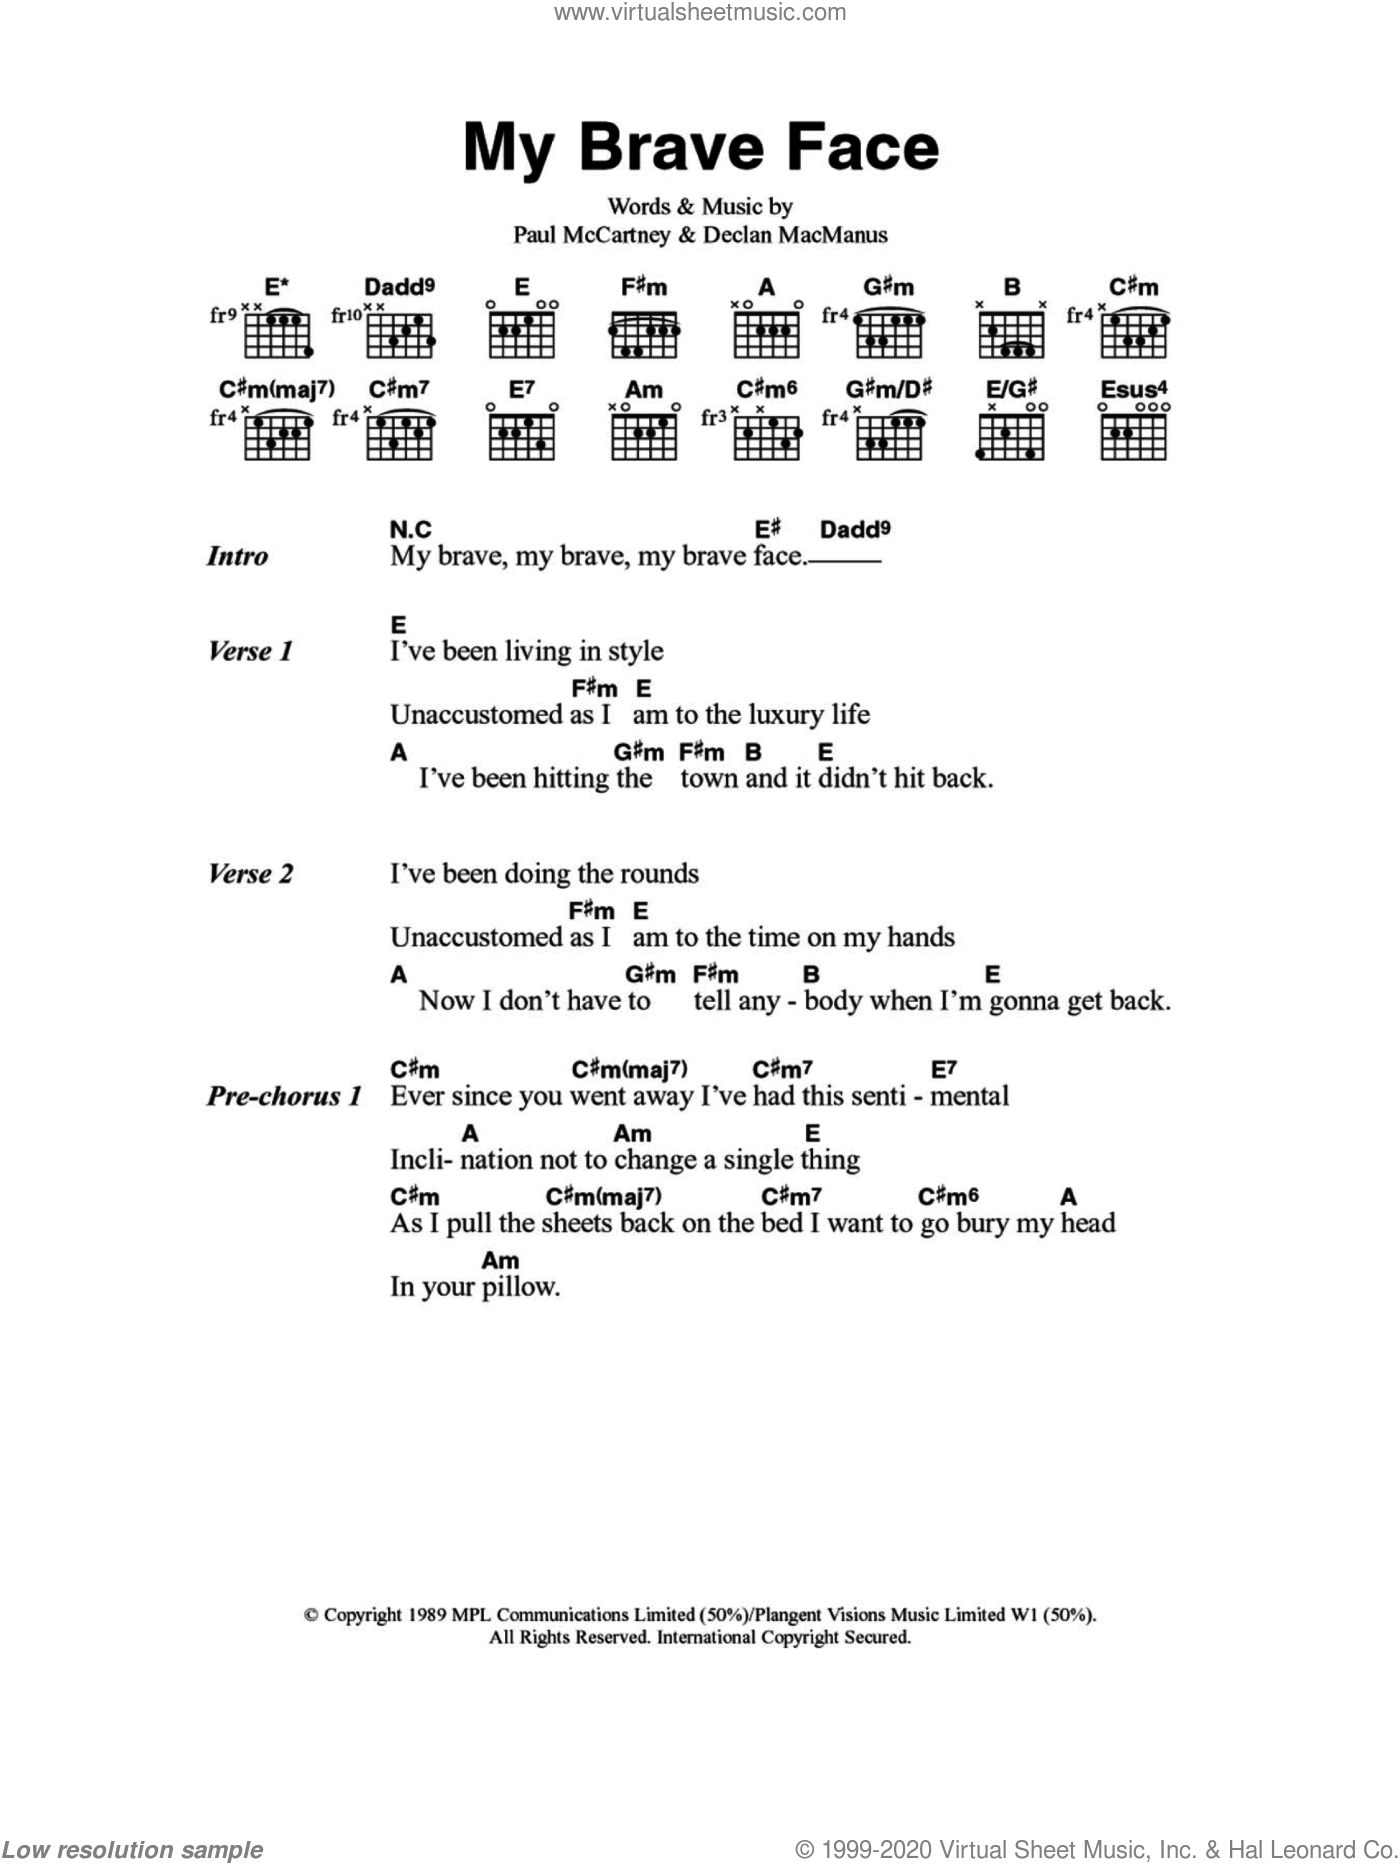 My Brave Face sheet music for guitar (chords) by Paul McCartney and Declan Macmanus, intermediate skill level